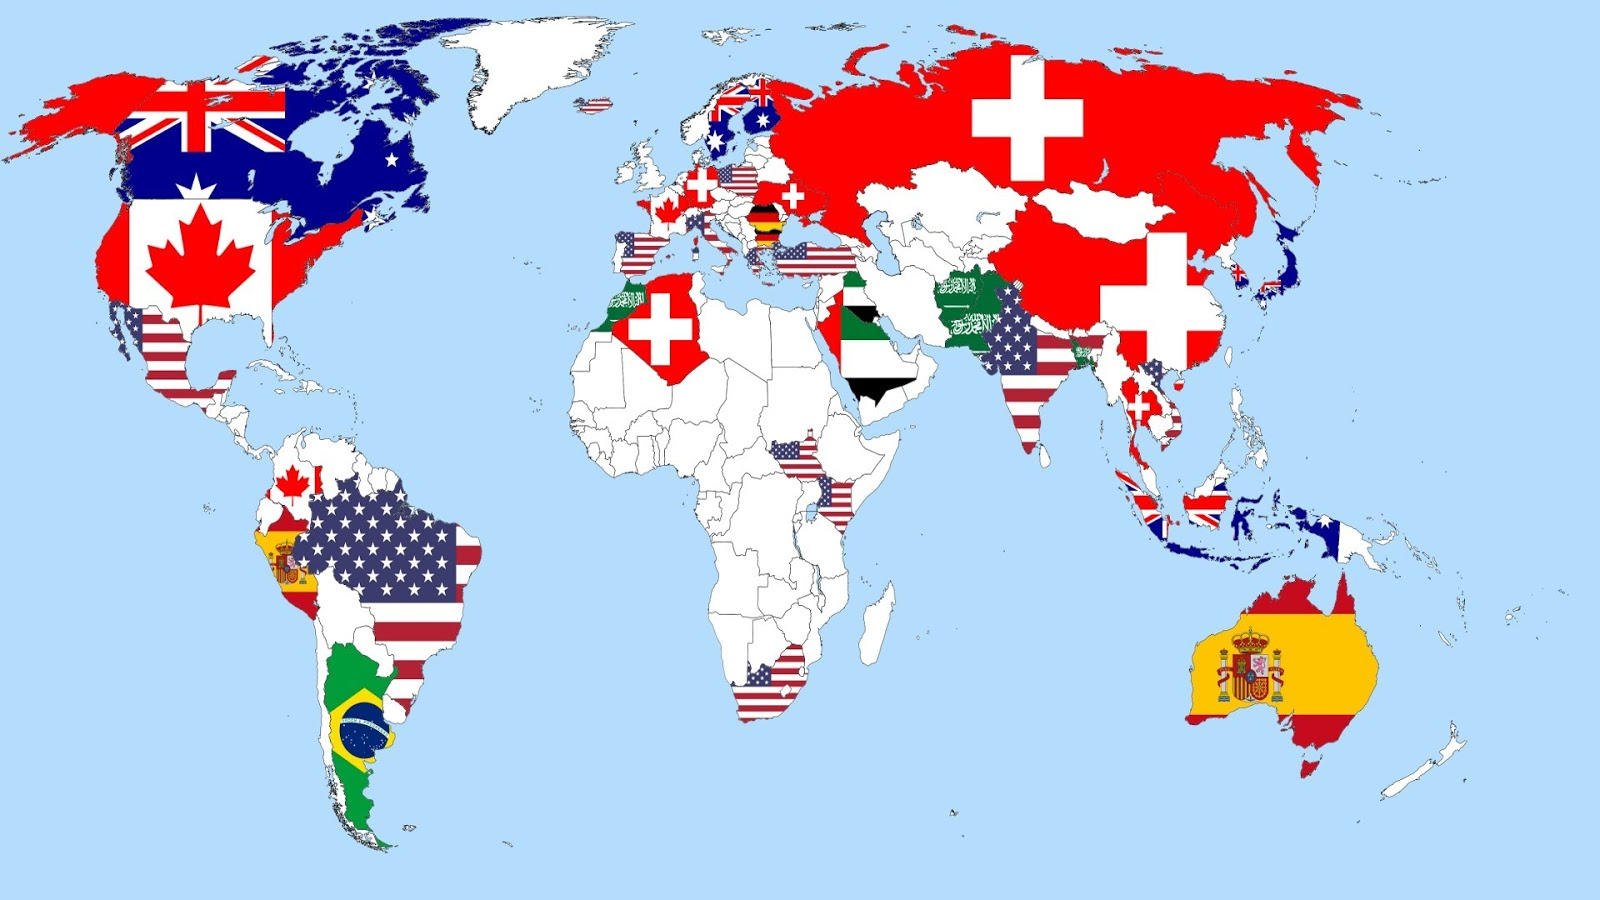 If not your country, which country you want to live in?